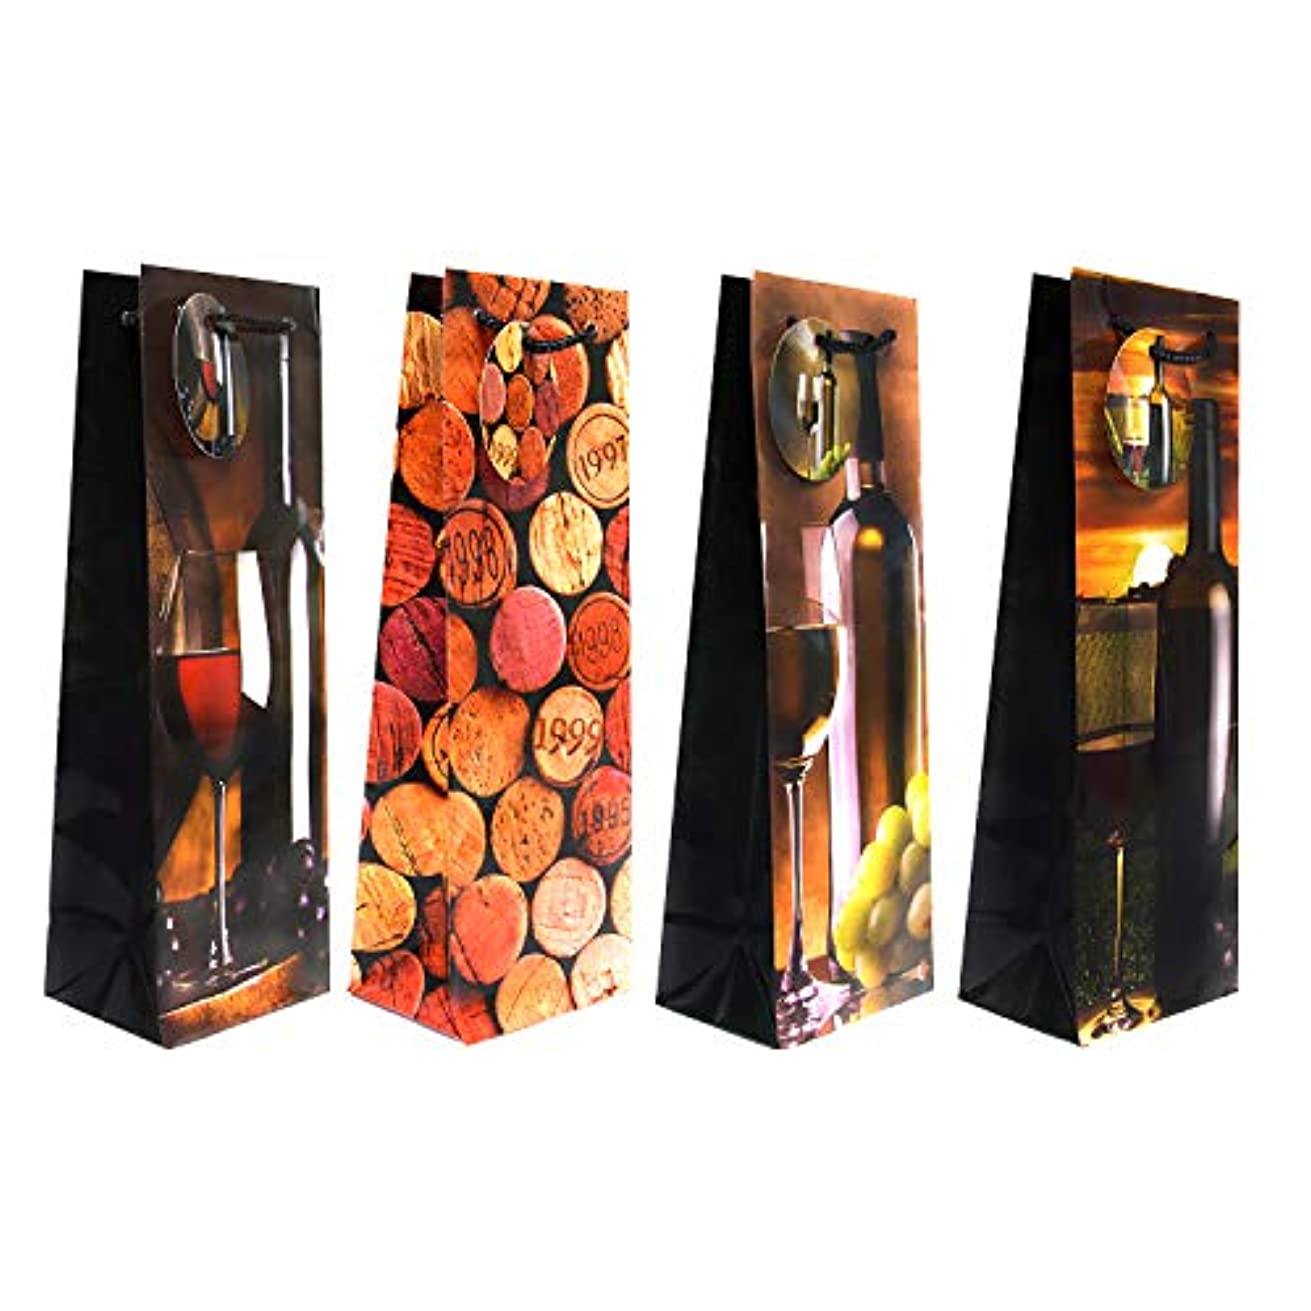 12 pc, Wine Gift Bags, Classic and Modern Wine Gift Bag Set of 4 Designs